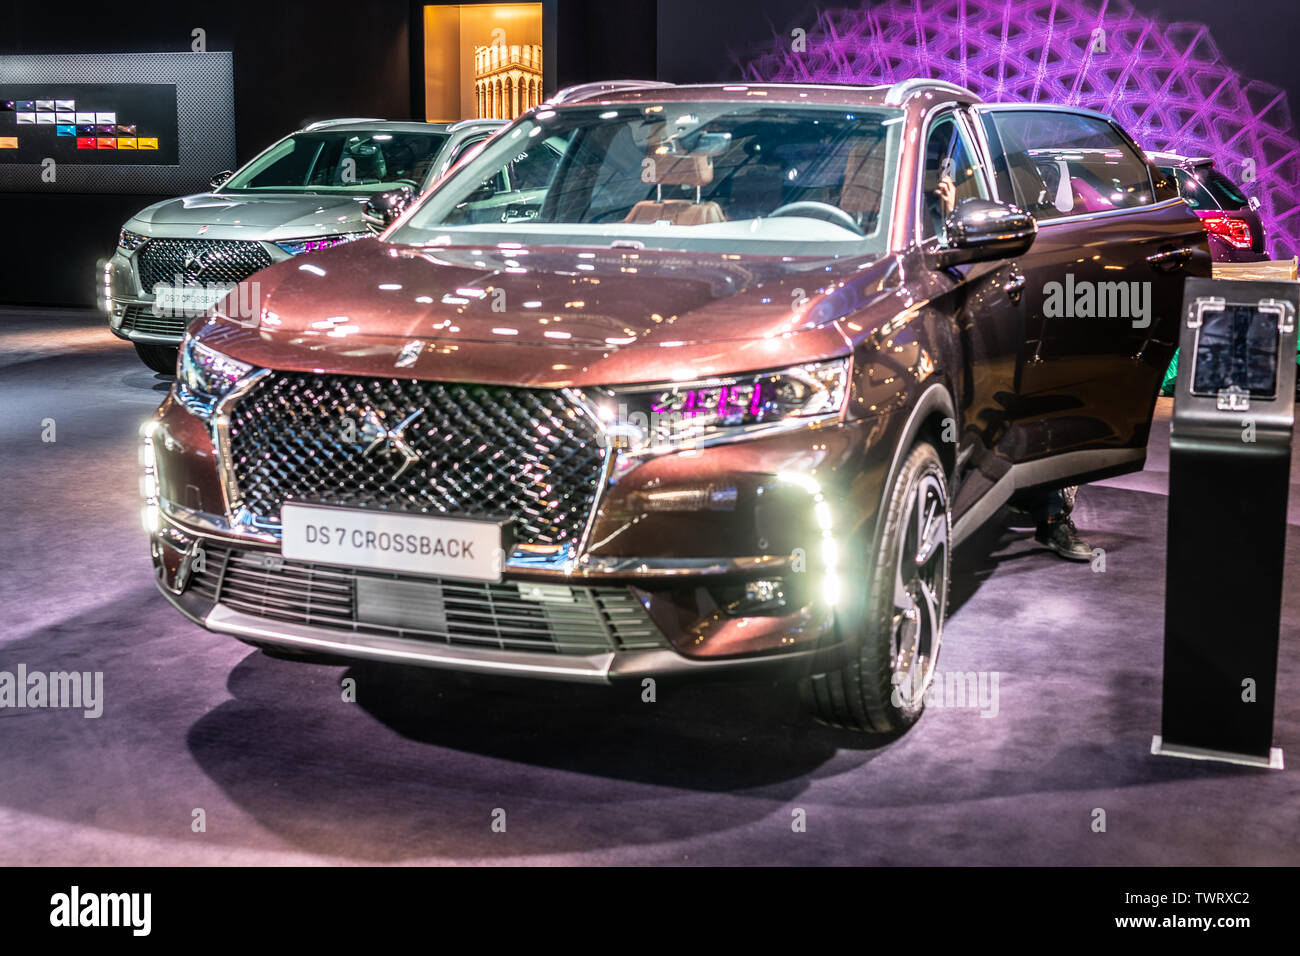 Paris, France, Oct 09, 2018 Citroen DS 7 Crossback 4x4 at Mondial Paris Motor Show, SUV car produced by French DS Automobiles - Stock Image